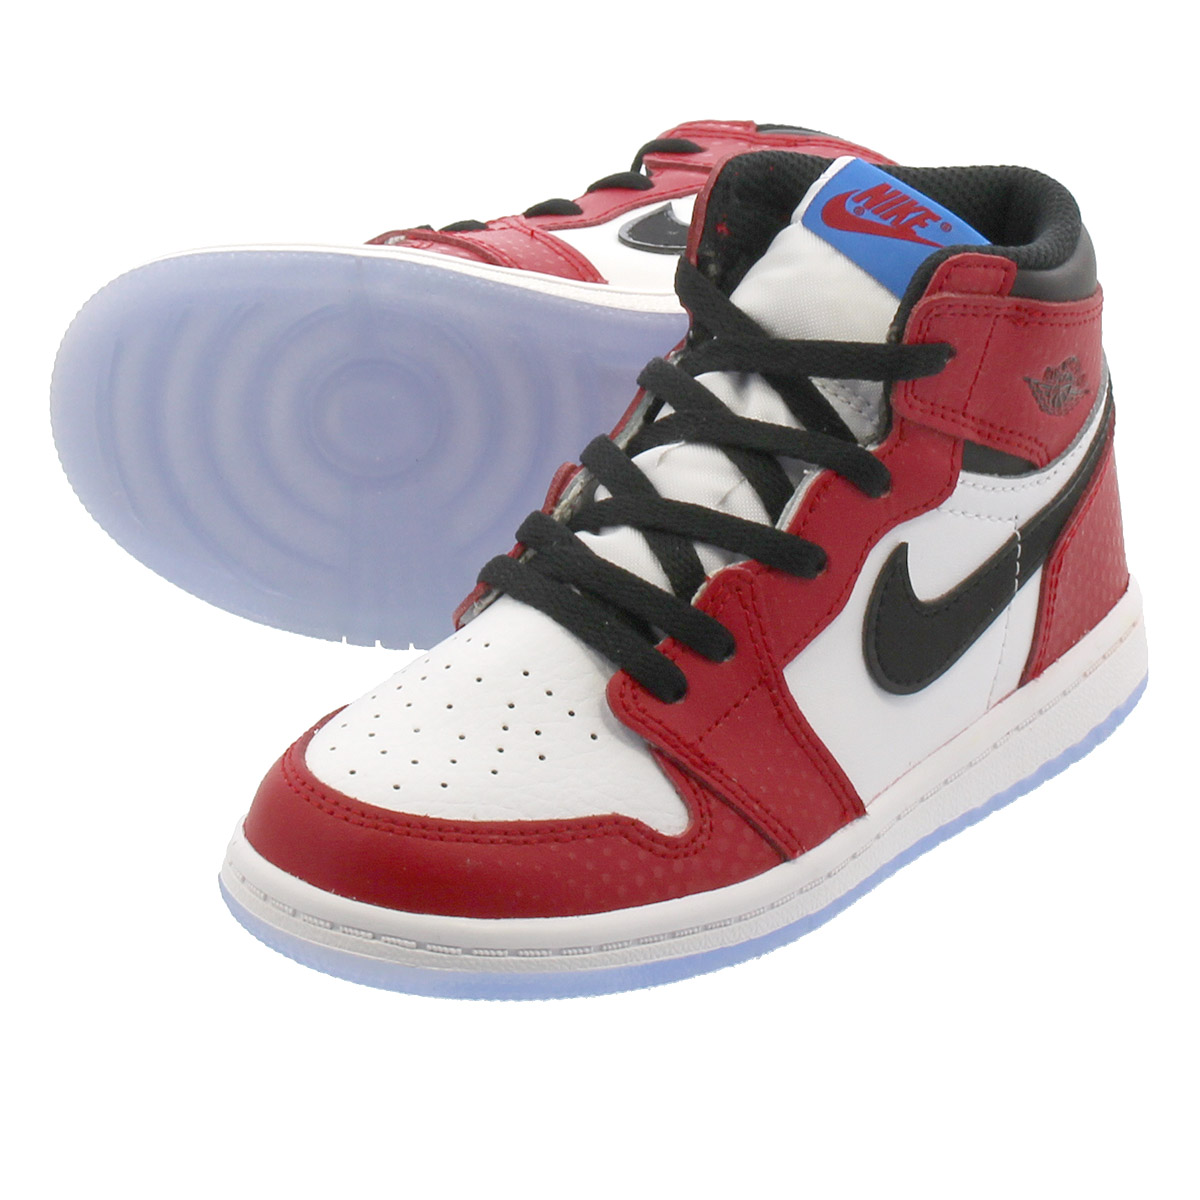 6e448d7348c NIKE AIR JORDAN 1 RETRO HIGH OG BT耐吉空氣喬丹1重新流行高OG BT GYM RED WHITE PHOTO  BLUE BLACK aq2665-602